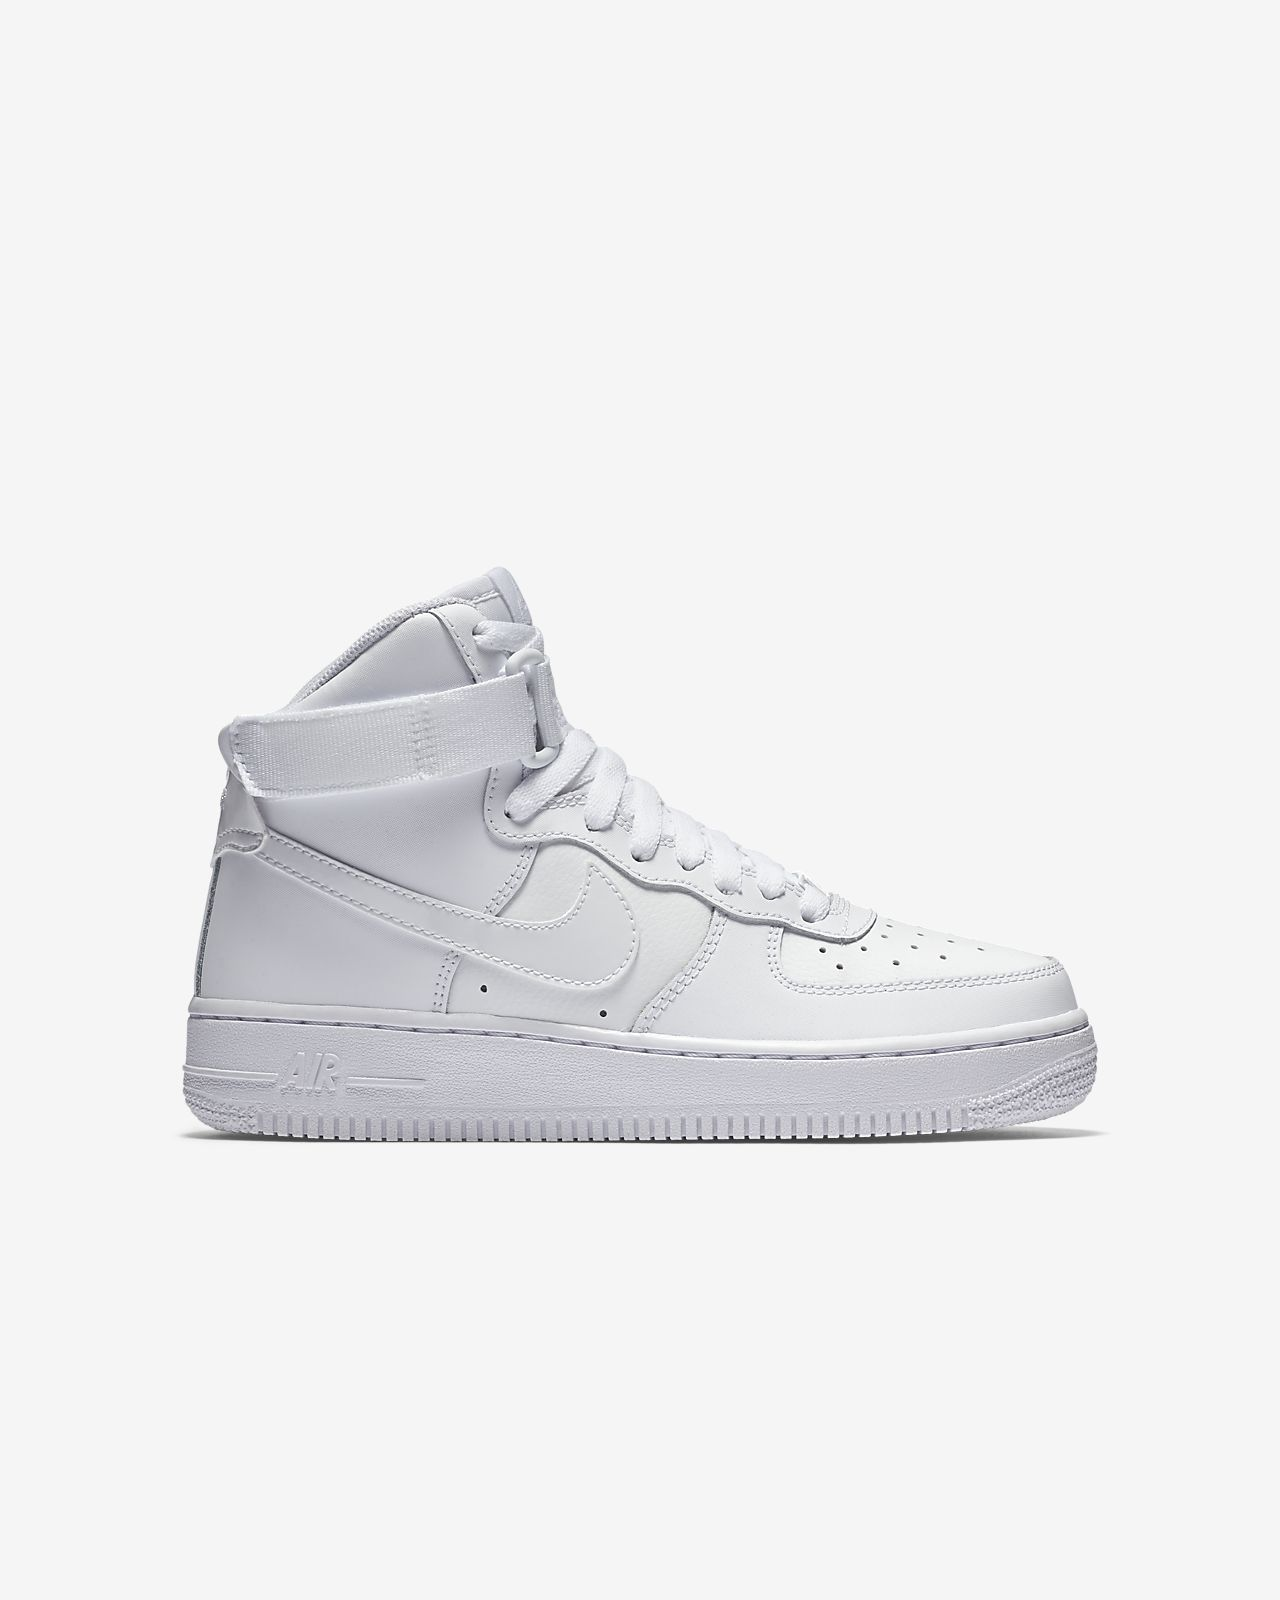 hot sale online cdd8d 44425 Nike Air Force 1 High : Nike × Men and Women's shoes 2018 ...